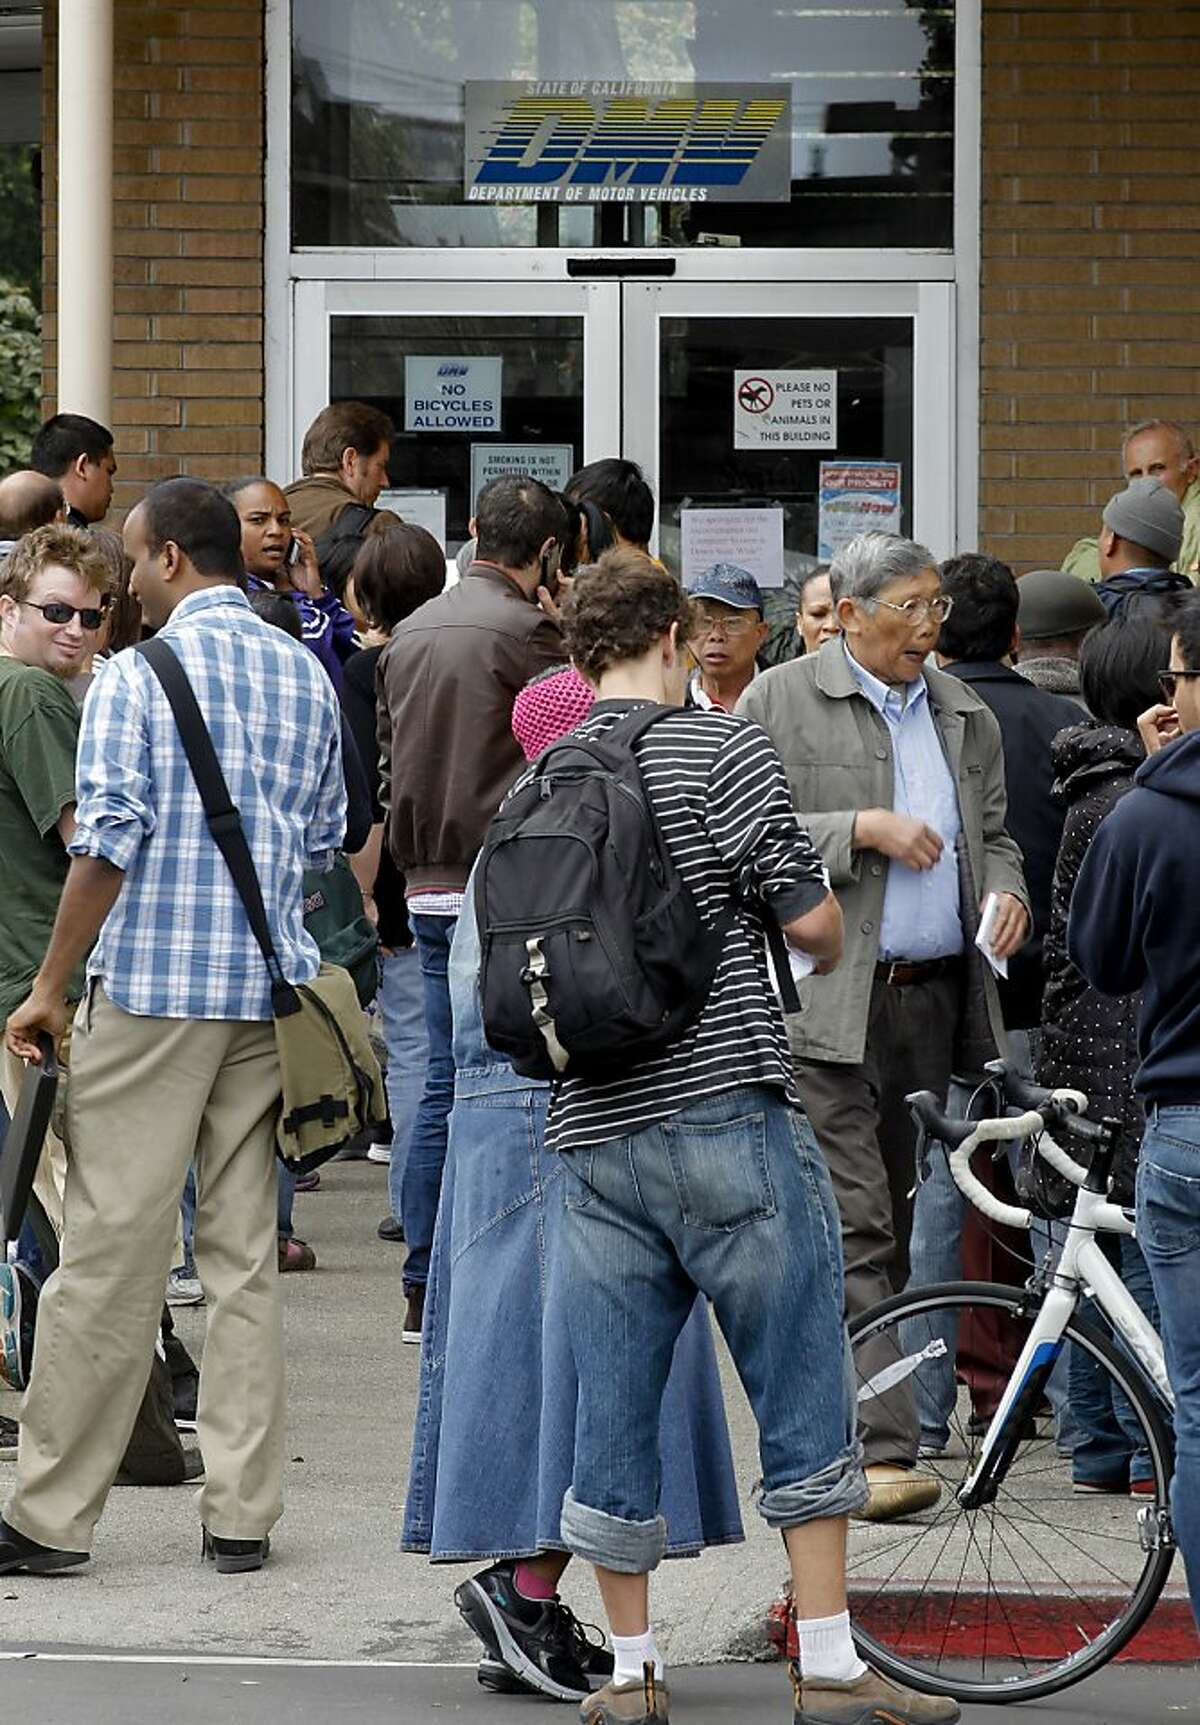 Dozens wait outside for the doors to open at the California Department of Motor Vehicles office on Fell Street in San Francisco, Calif., on Tuesday August 14, 2012. The computer system used by the California Department of Motor Vehicles was down for several hours this morning forcing many of the statewide locations to shut their doors until the problem was fixed.